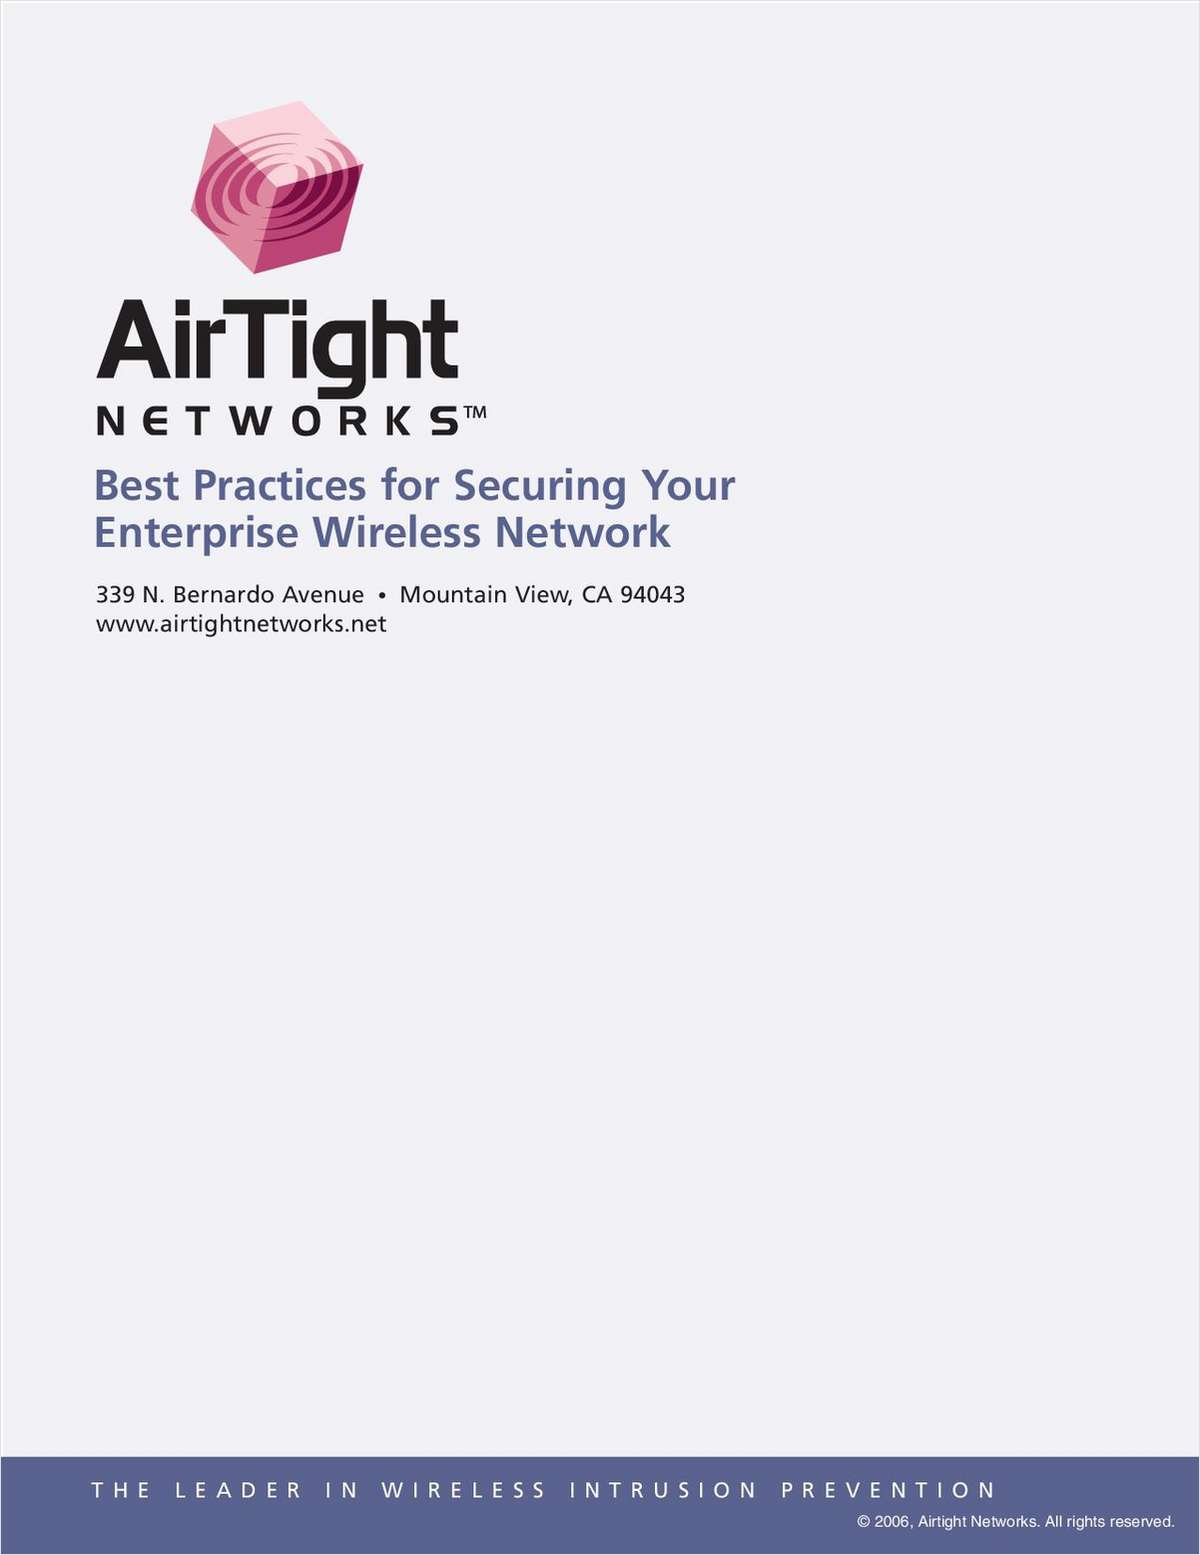 Best Practices for Securing Your Enterprise Wireless Network